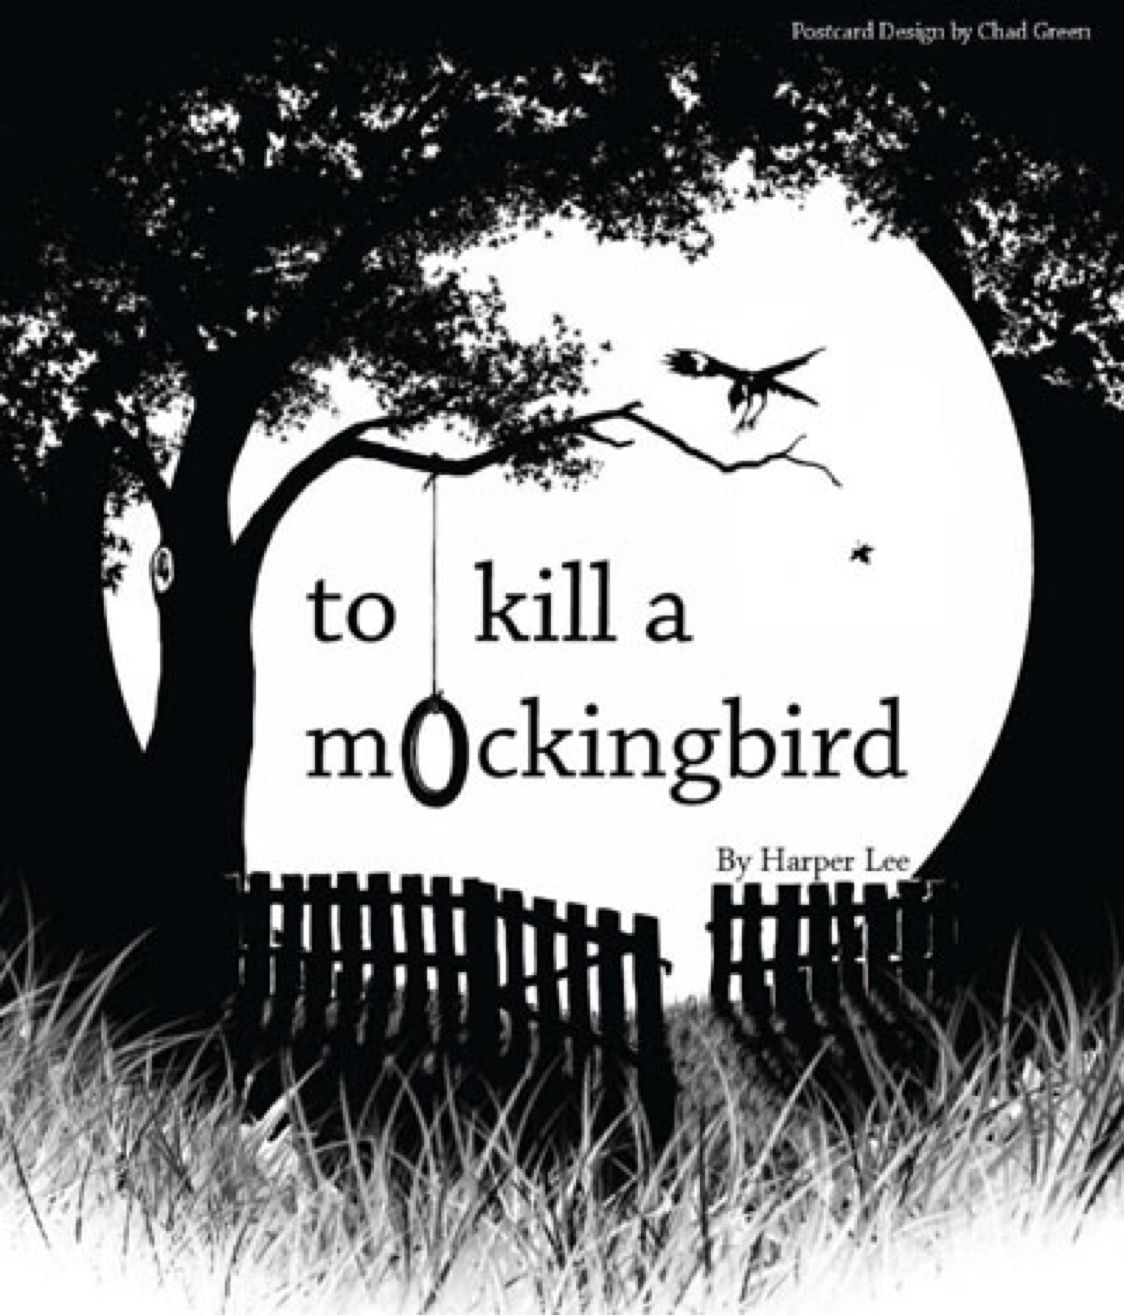 the gallery for gt to kill a mockingbird tree drawings